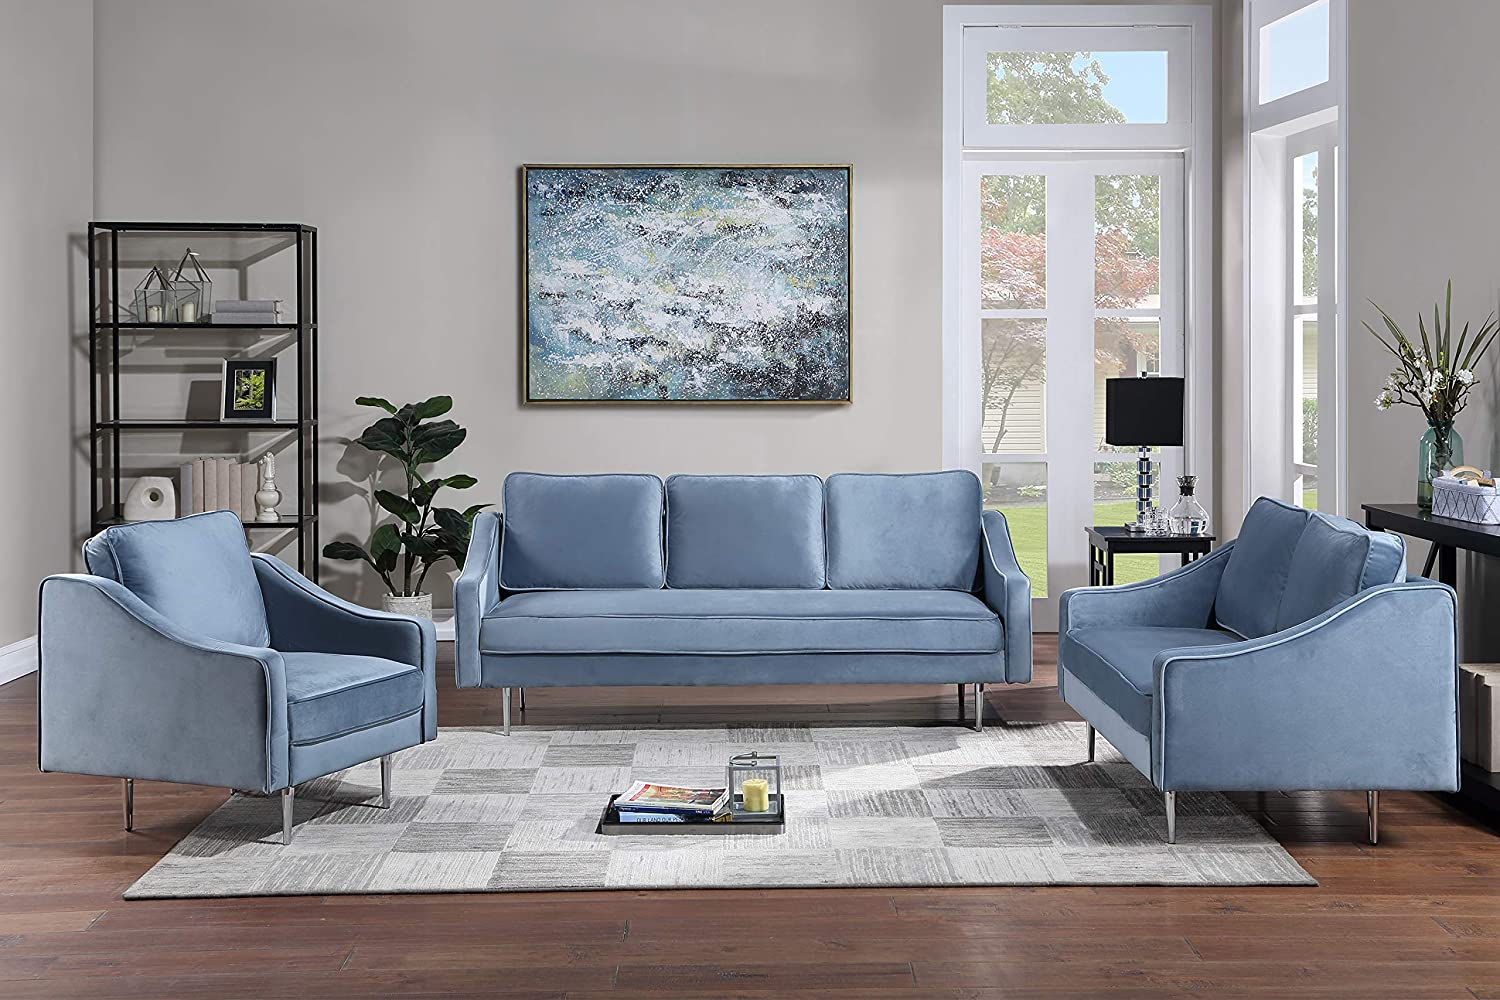 GAOPAN 3 Pieces Living Room Set Include Upholstered Three-Seat Couch, Loveseat and Elegant Curved Armchair,Velvet Fabric Sofa for Home or Office, Blue